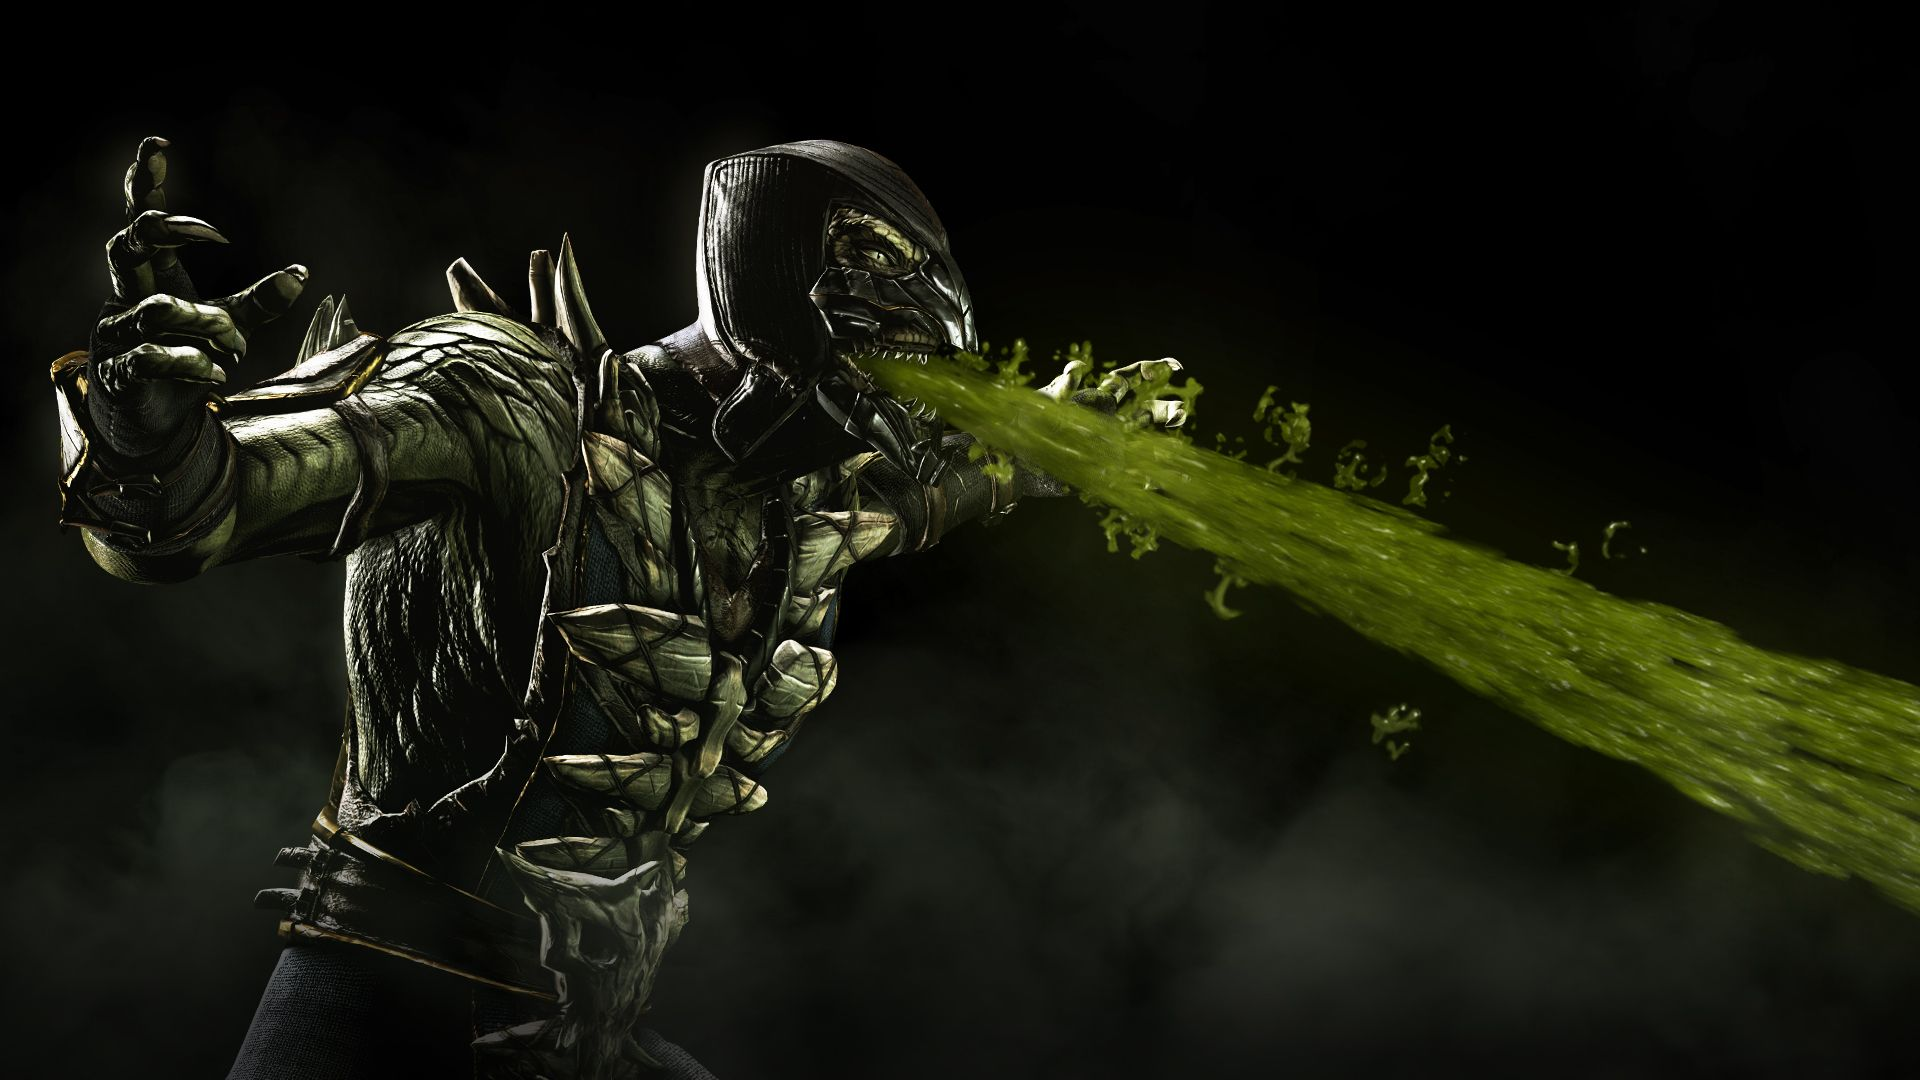 Mortal Kombat Reptile Wallpapers Top Free Mortal Kombat Reptile